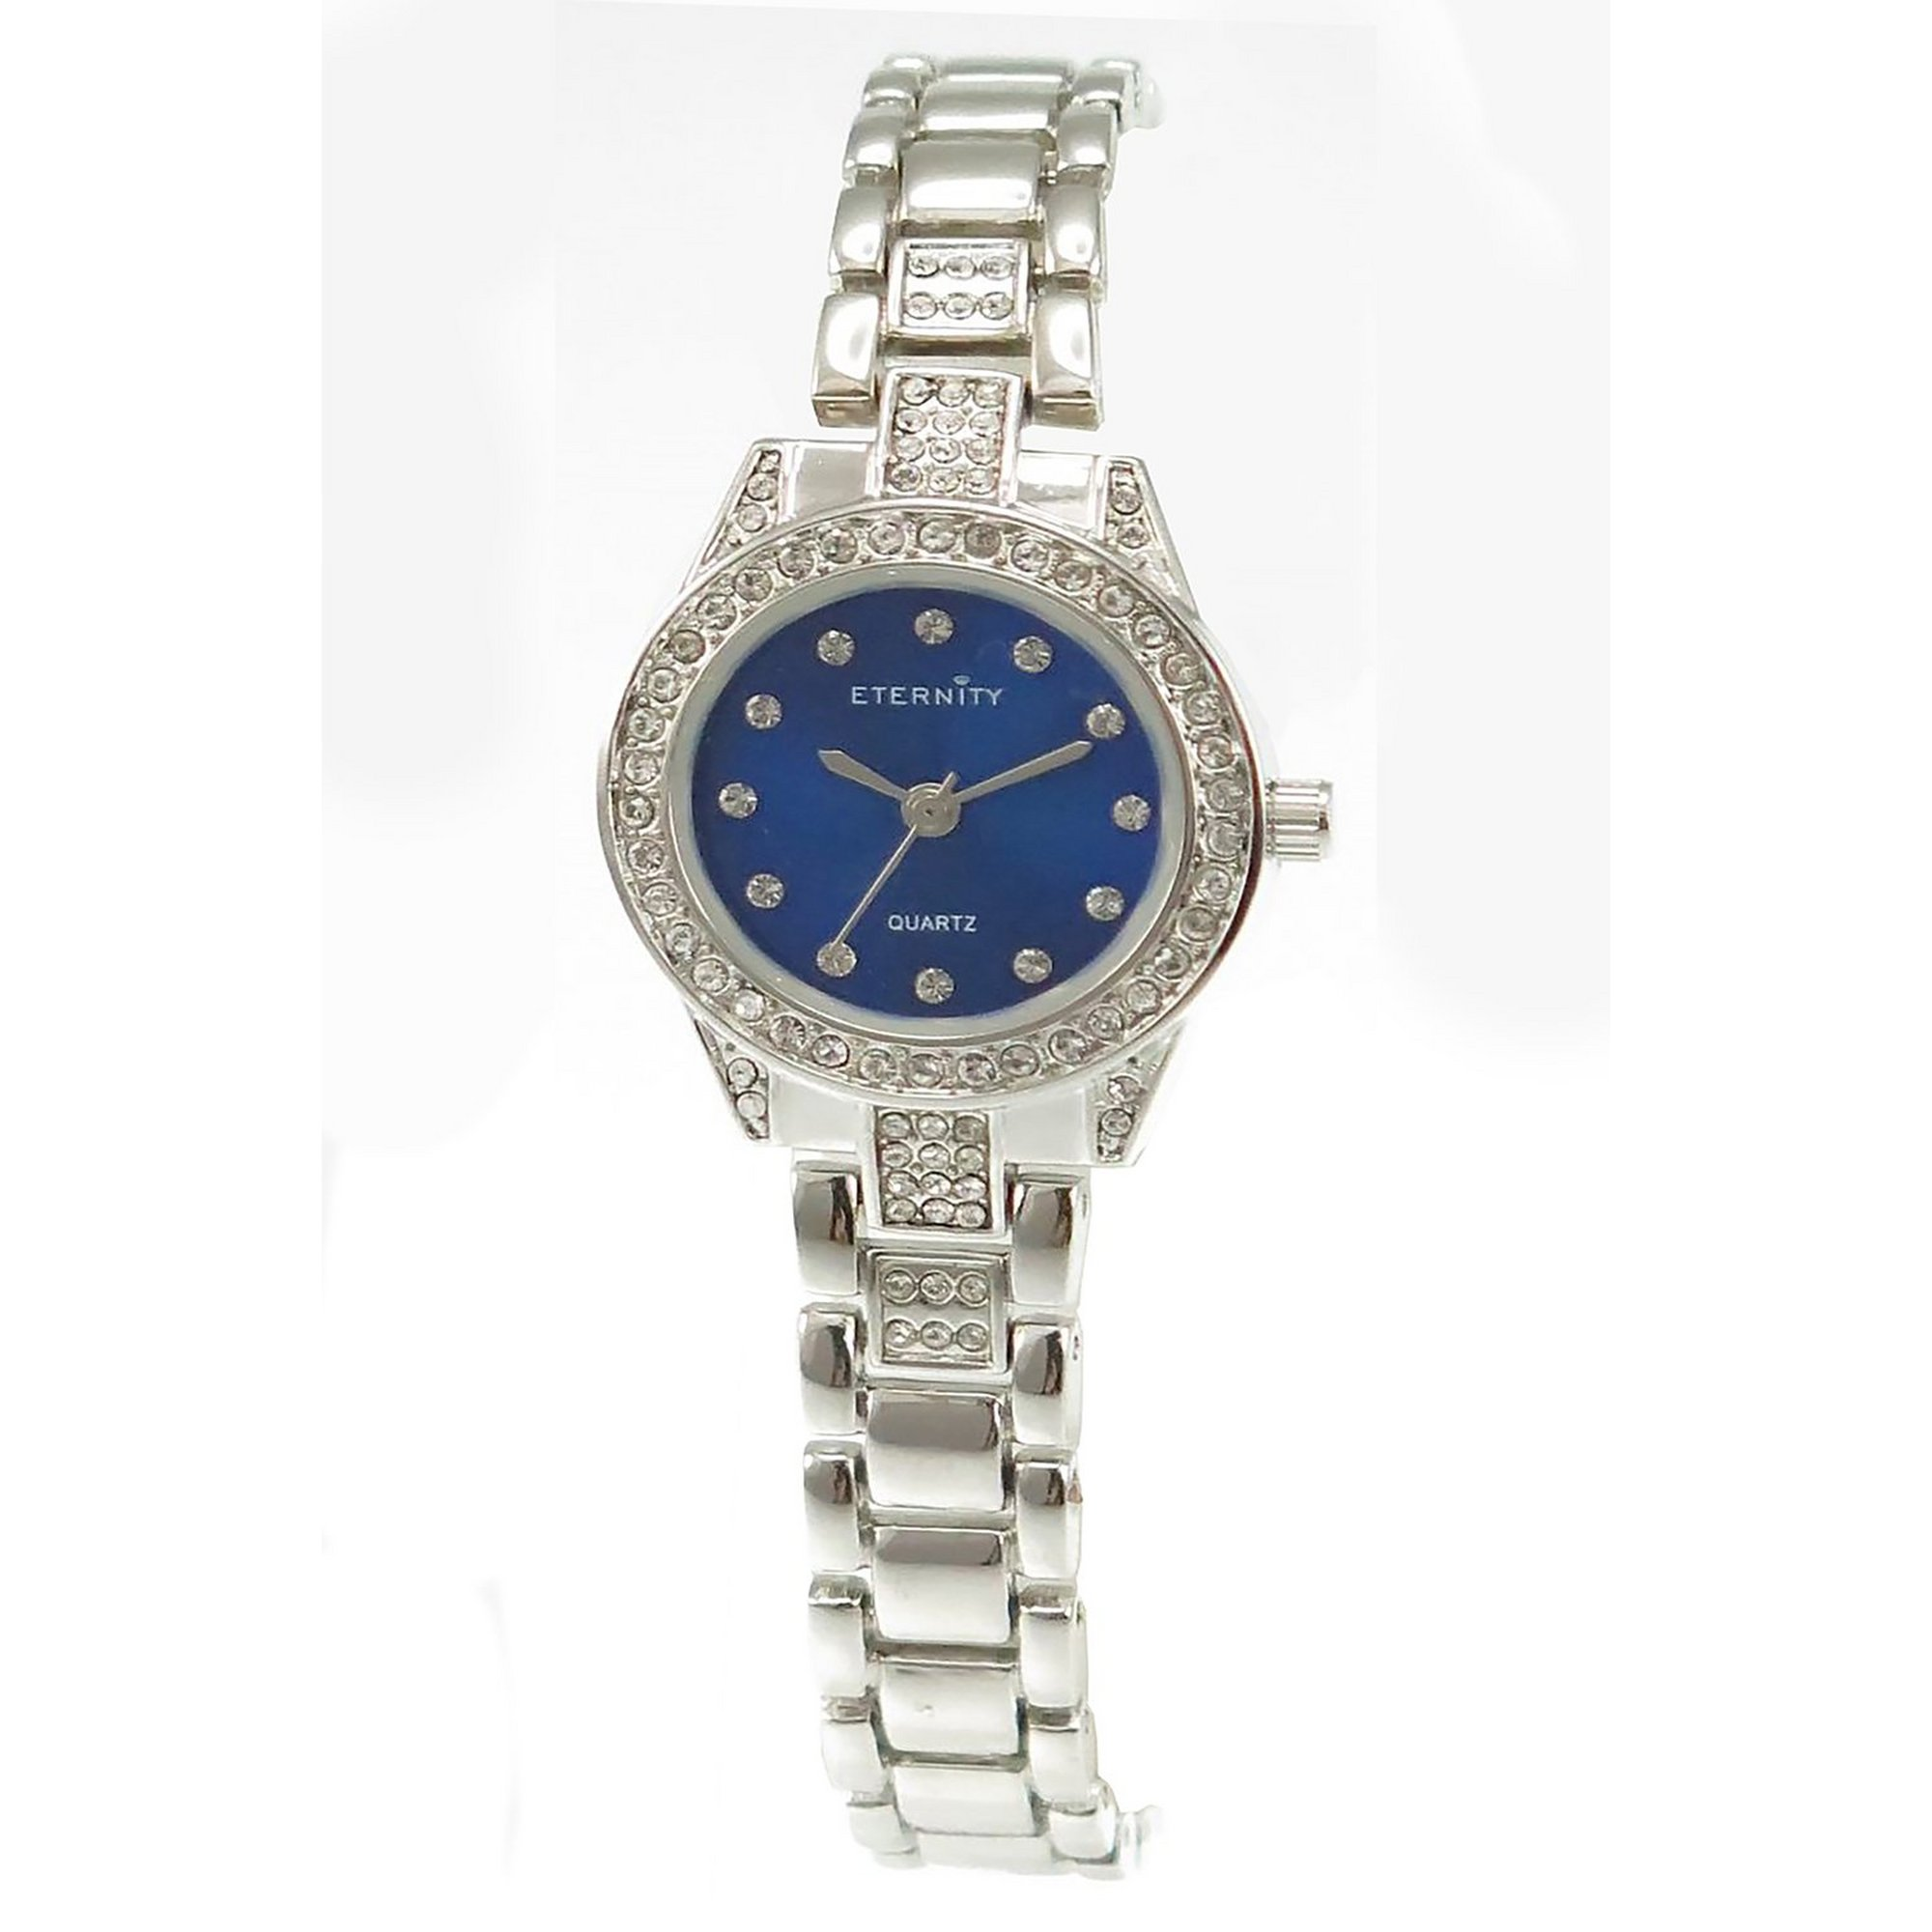 Image of Eternity Silver Analogue Watch with Blue Dial